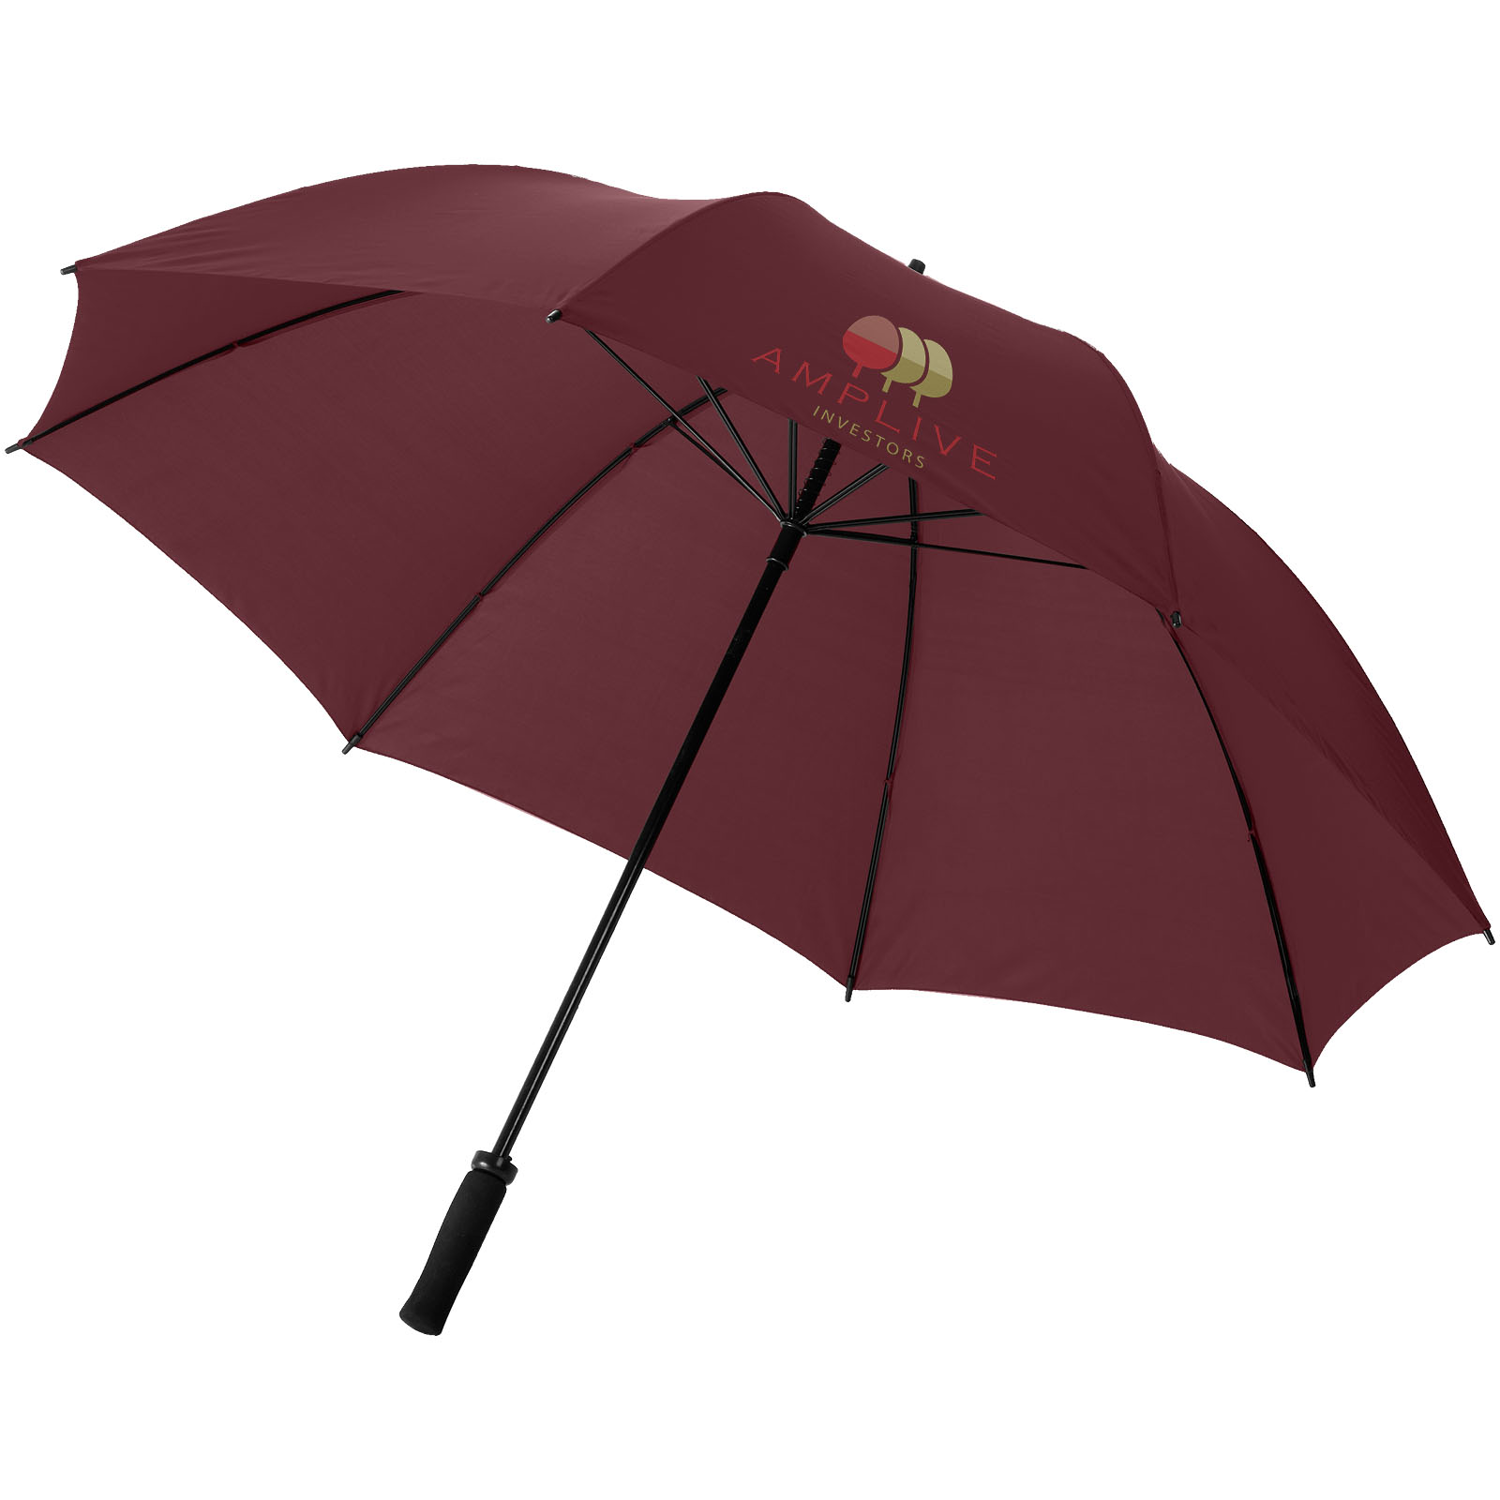 Yfke 30Inch Golf Umbrella With EVA Handle